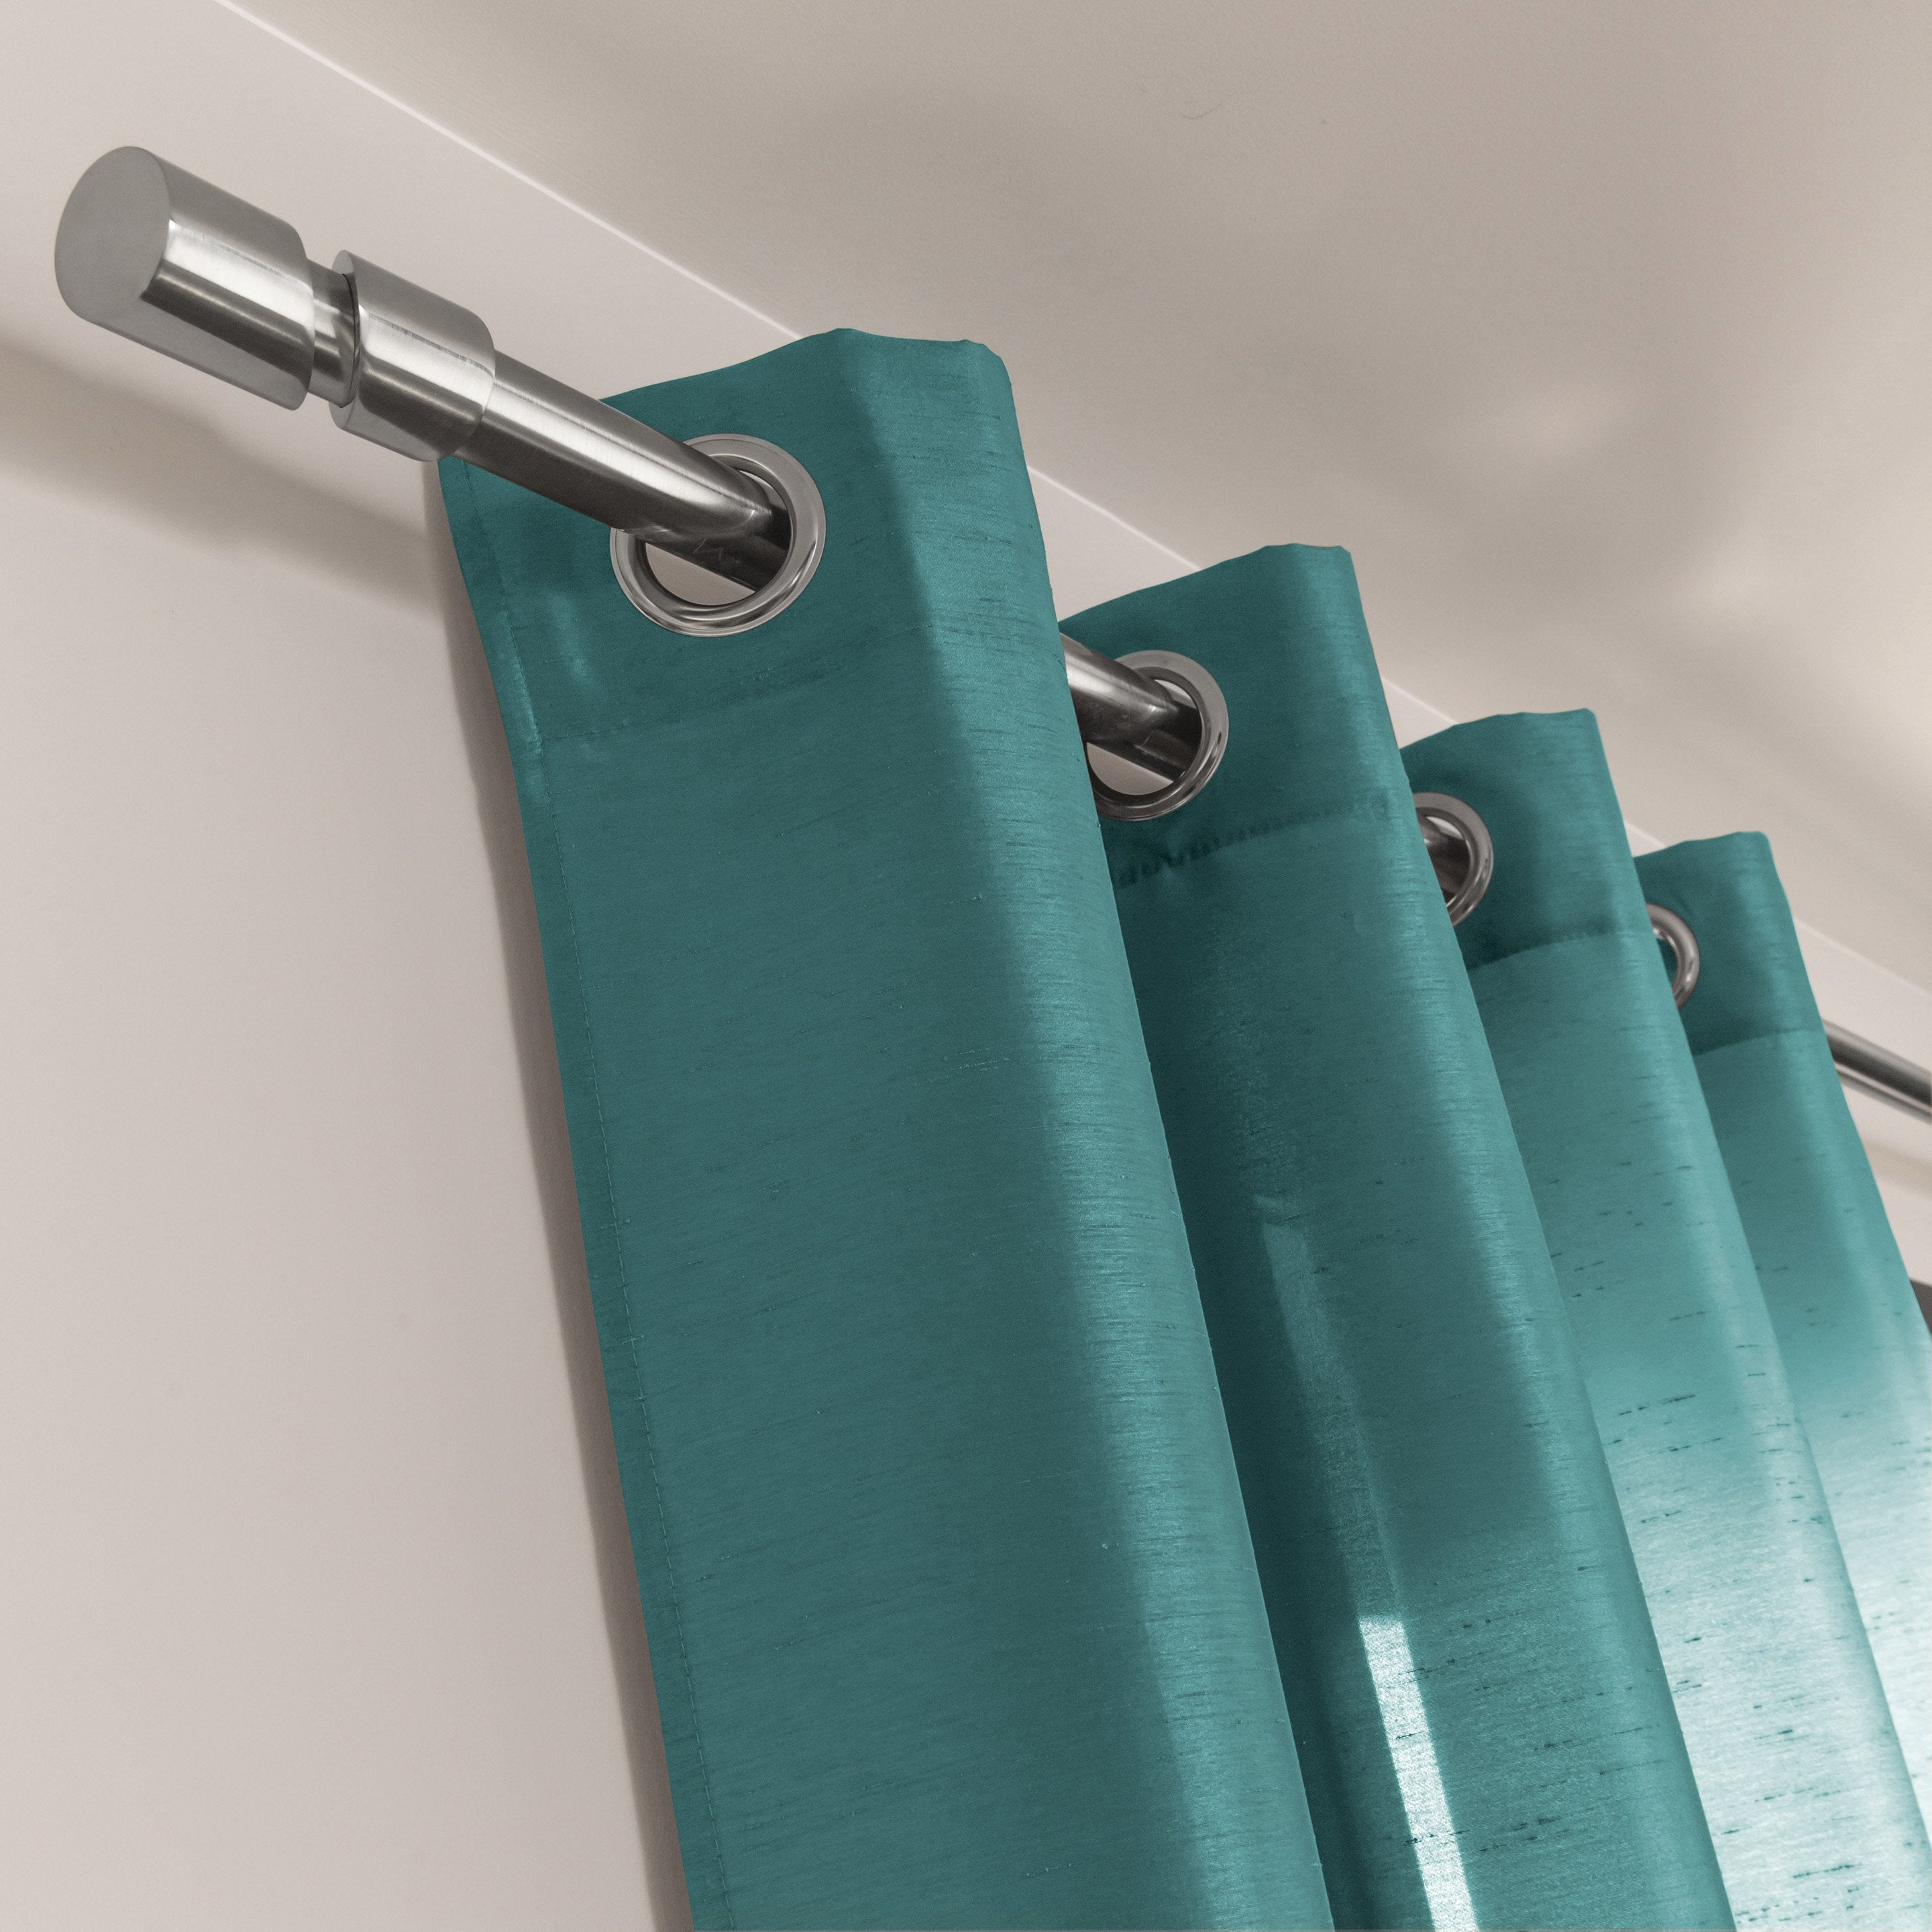 Rideau tamisant silka turquoise x cm inspire leroy merlin for Rideau turquoise